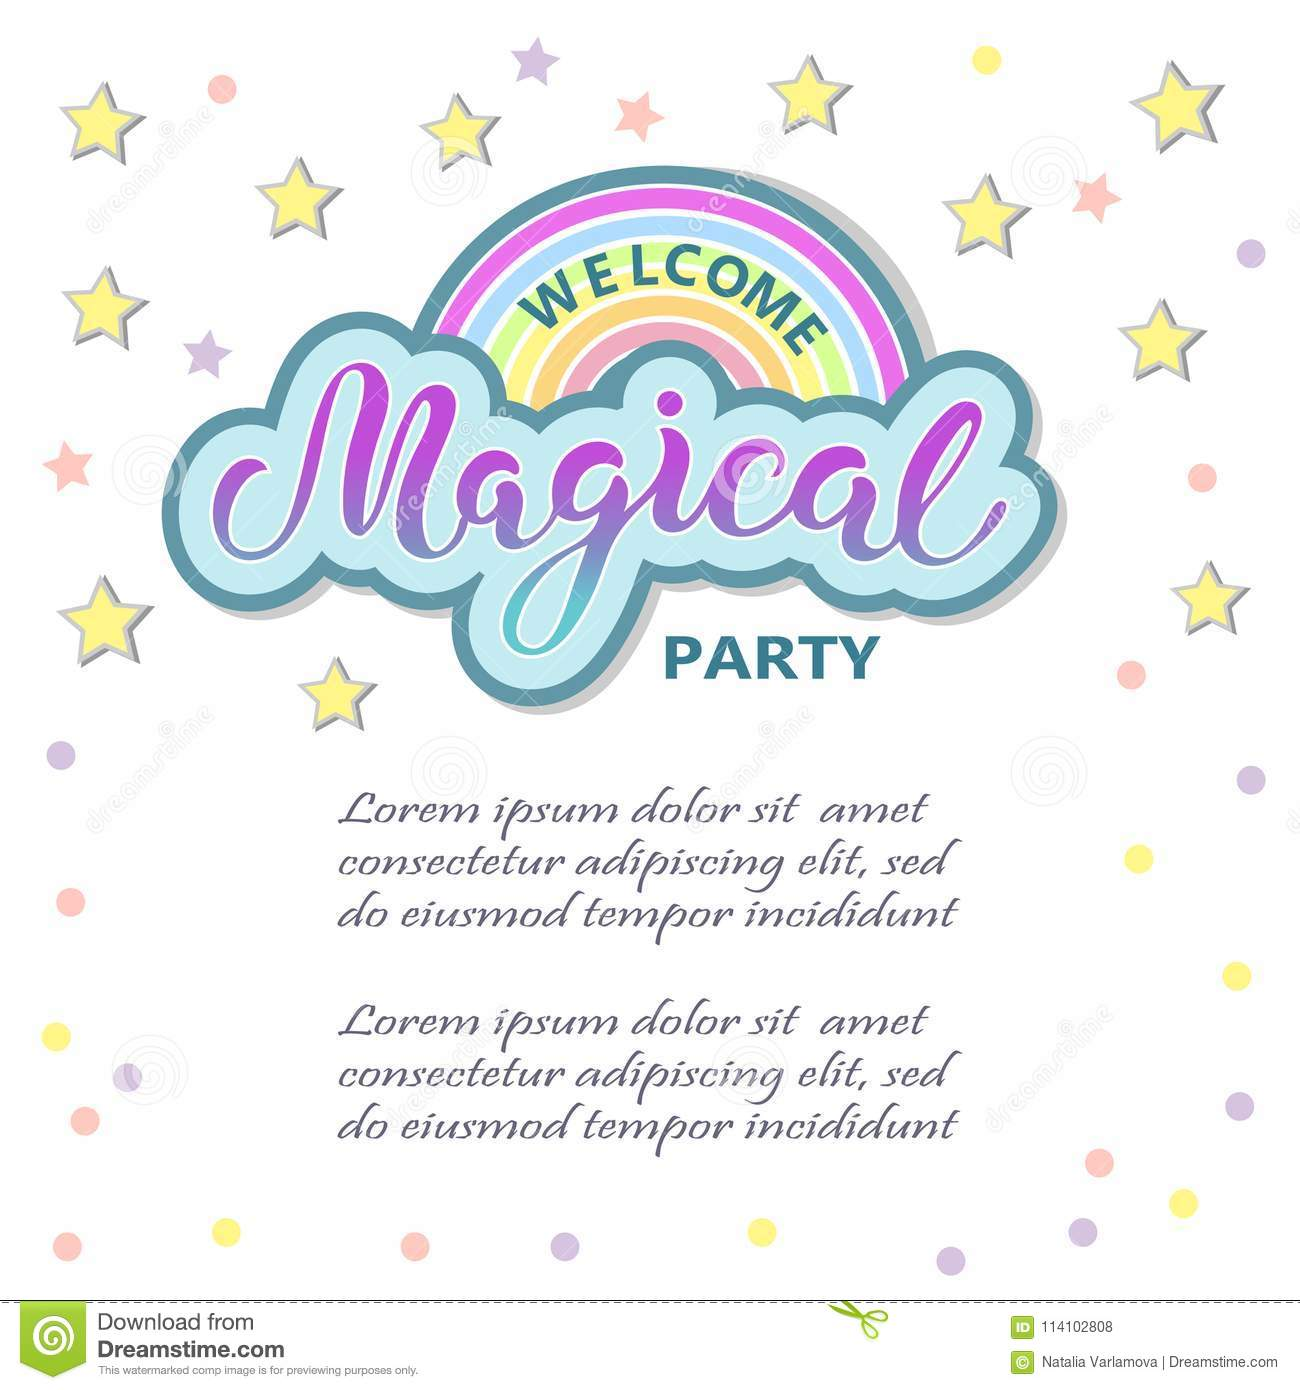 Welcome Margical Party Template For Party Invitation Stock ...